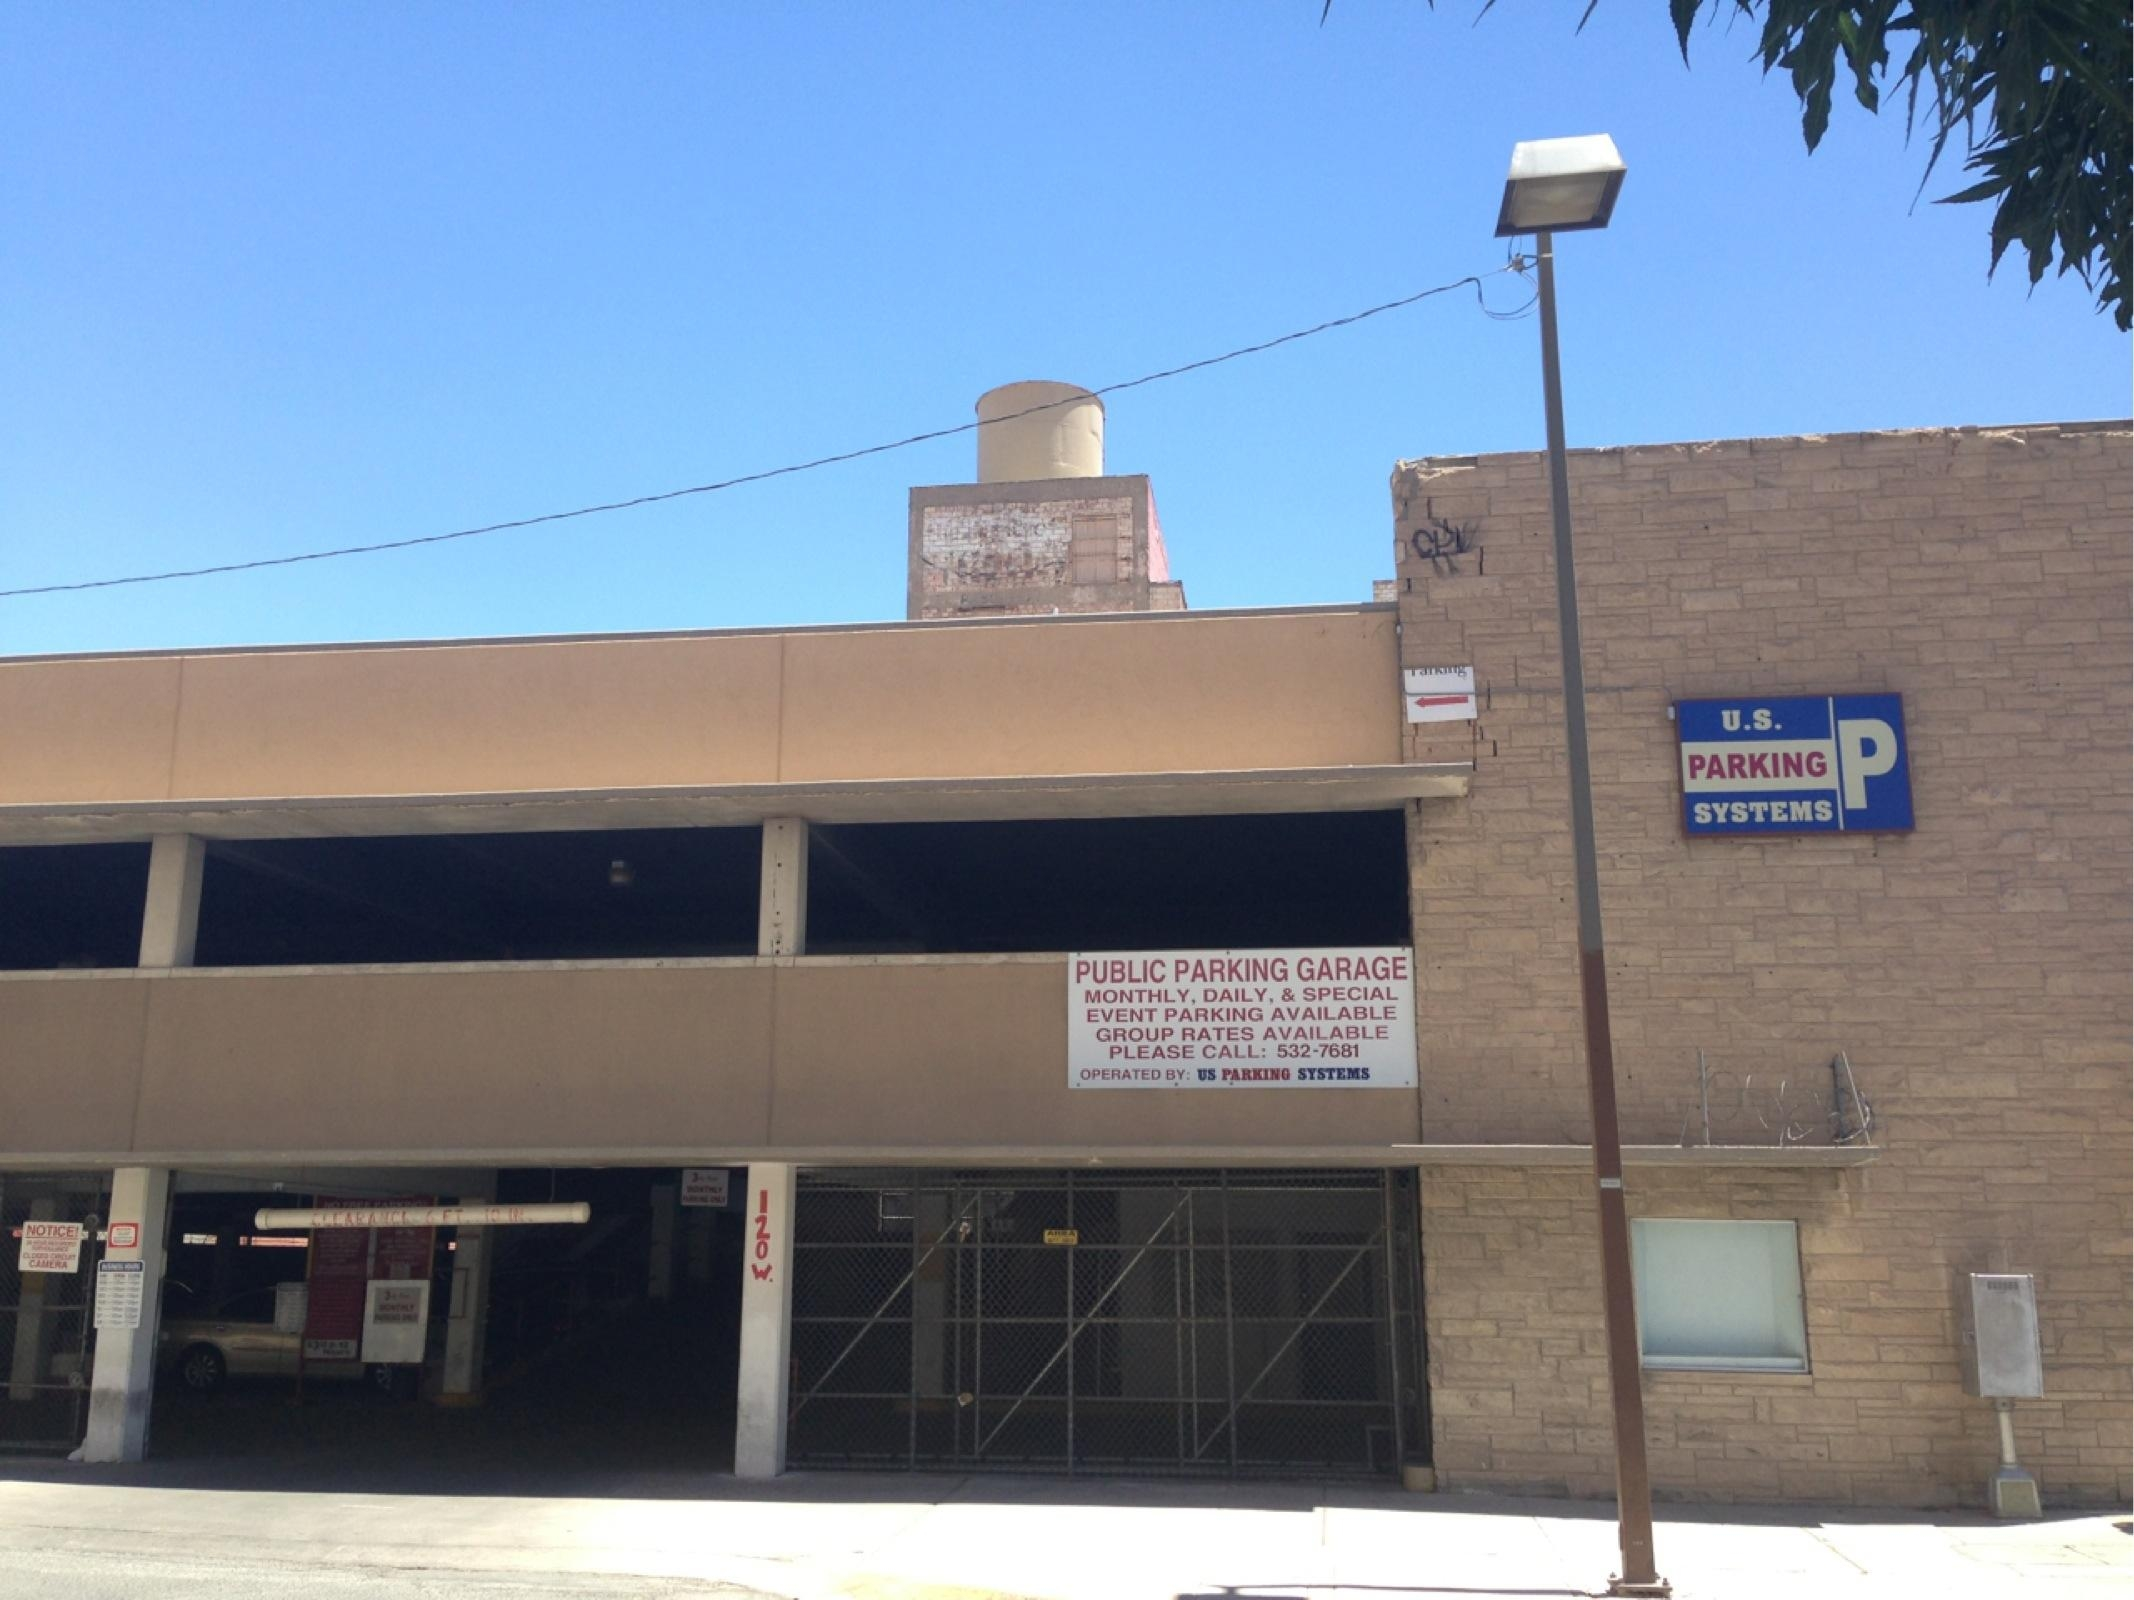 154 W San Antonio Ave Garage Parking In El Paso Parkme